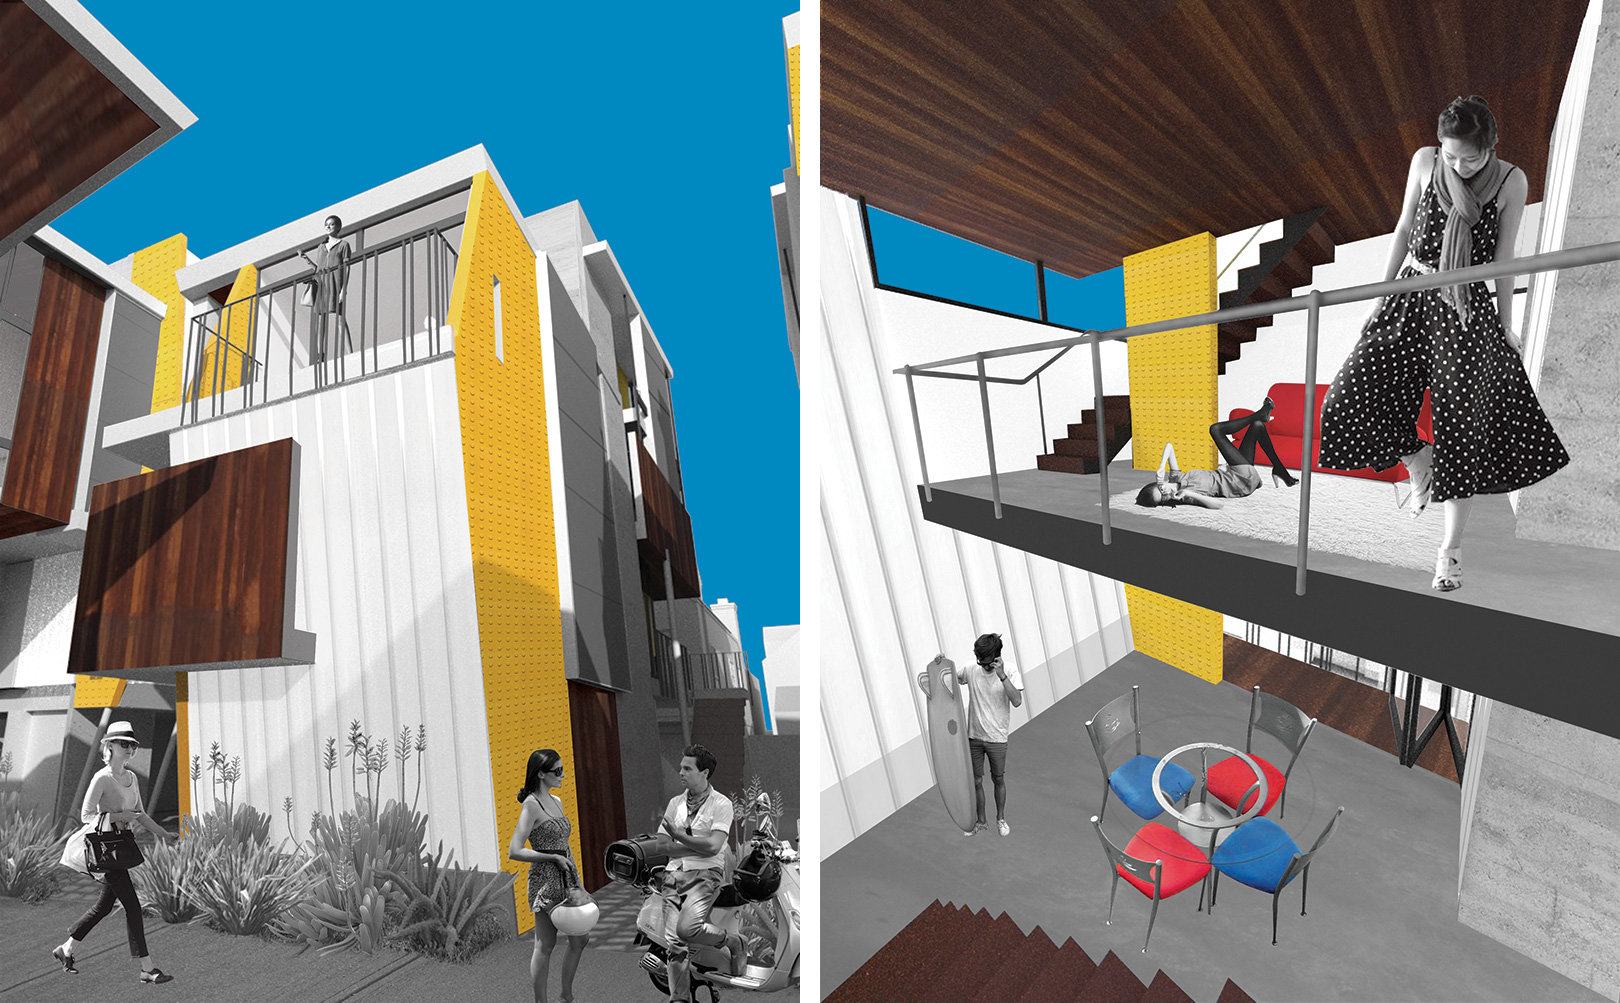 Exterior and interior perspectives of the two-story Goose duplex at the center of the QTCT housing proposal